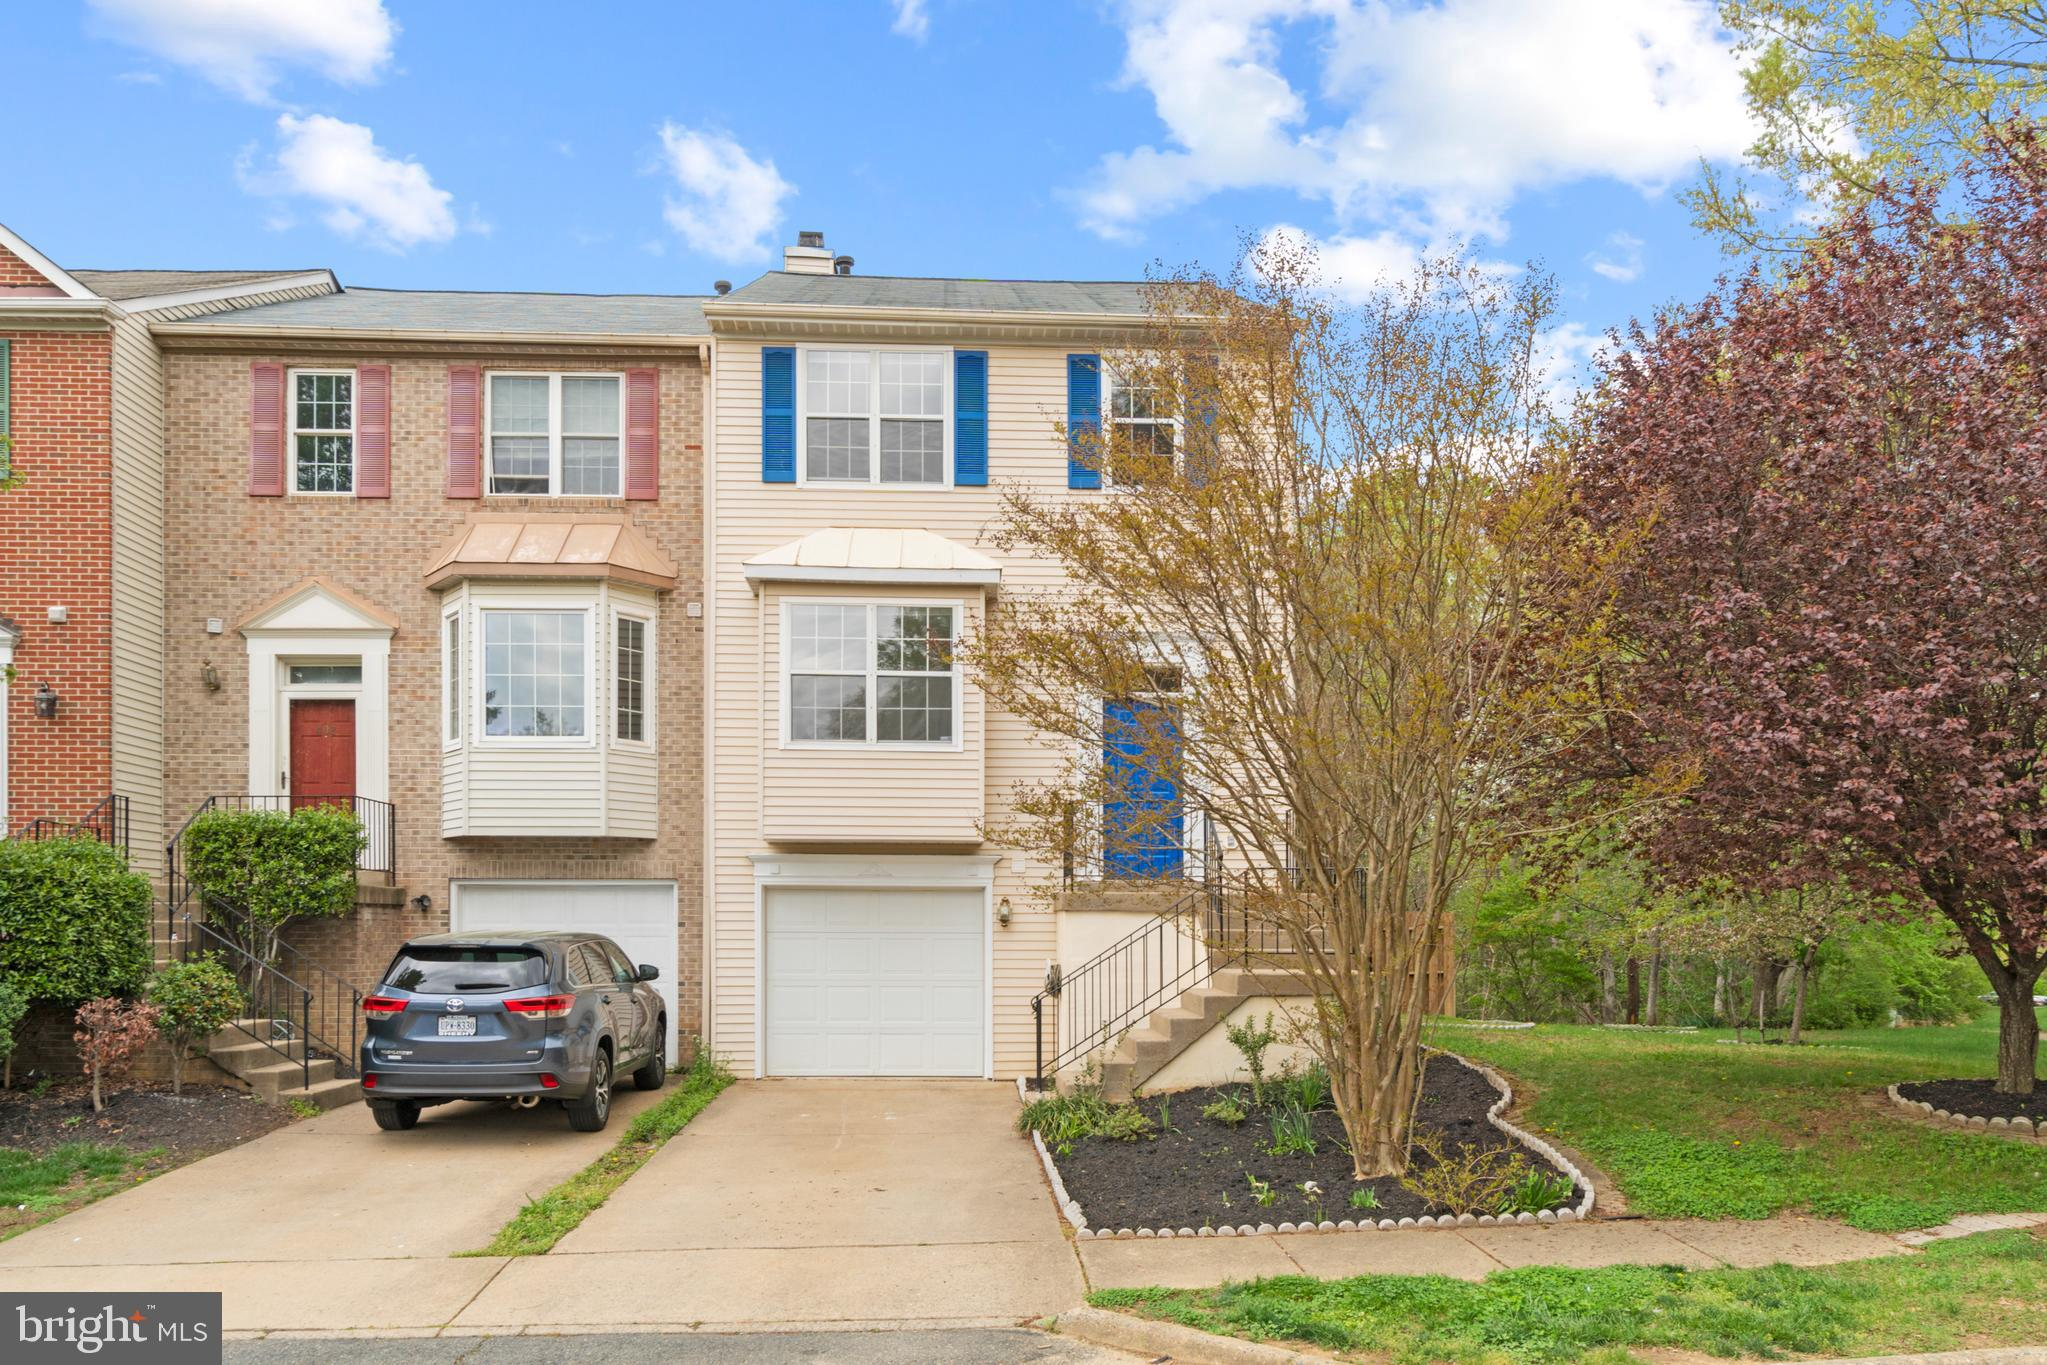 BEAUTIFUL 3 STORY END UNIT TOWNHOME. LOCATION MINUTES AWAY FROM I95 AND THE 17 COMMERICAL DISTRICT.